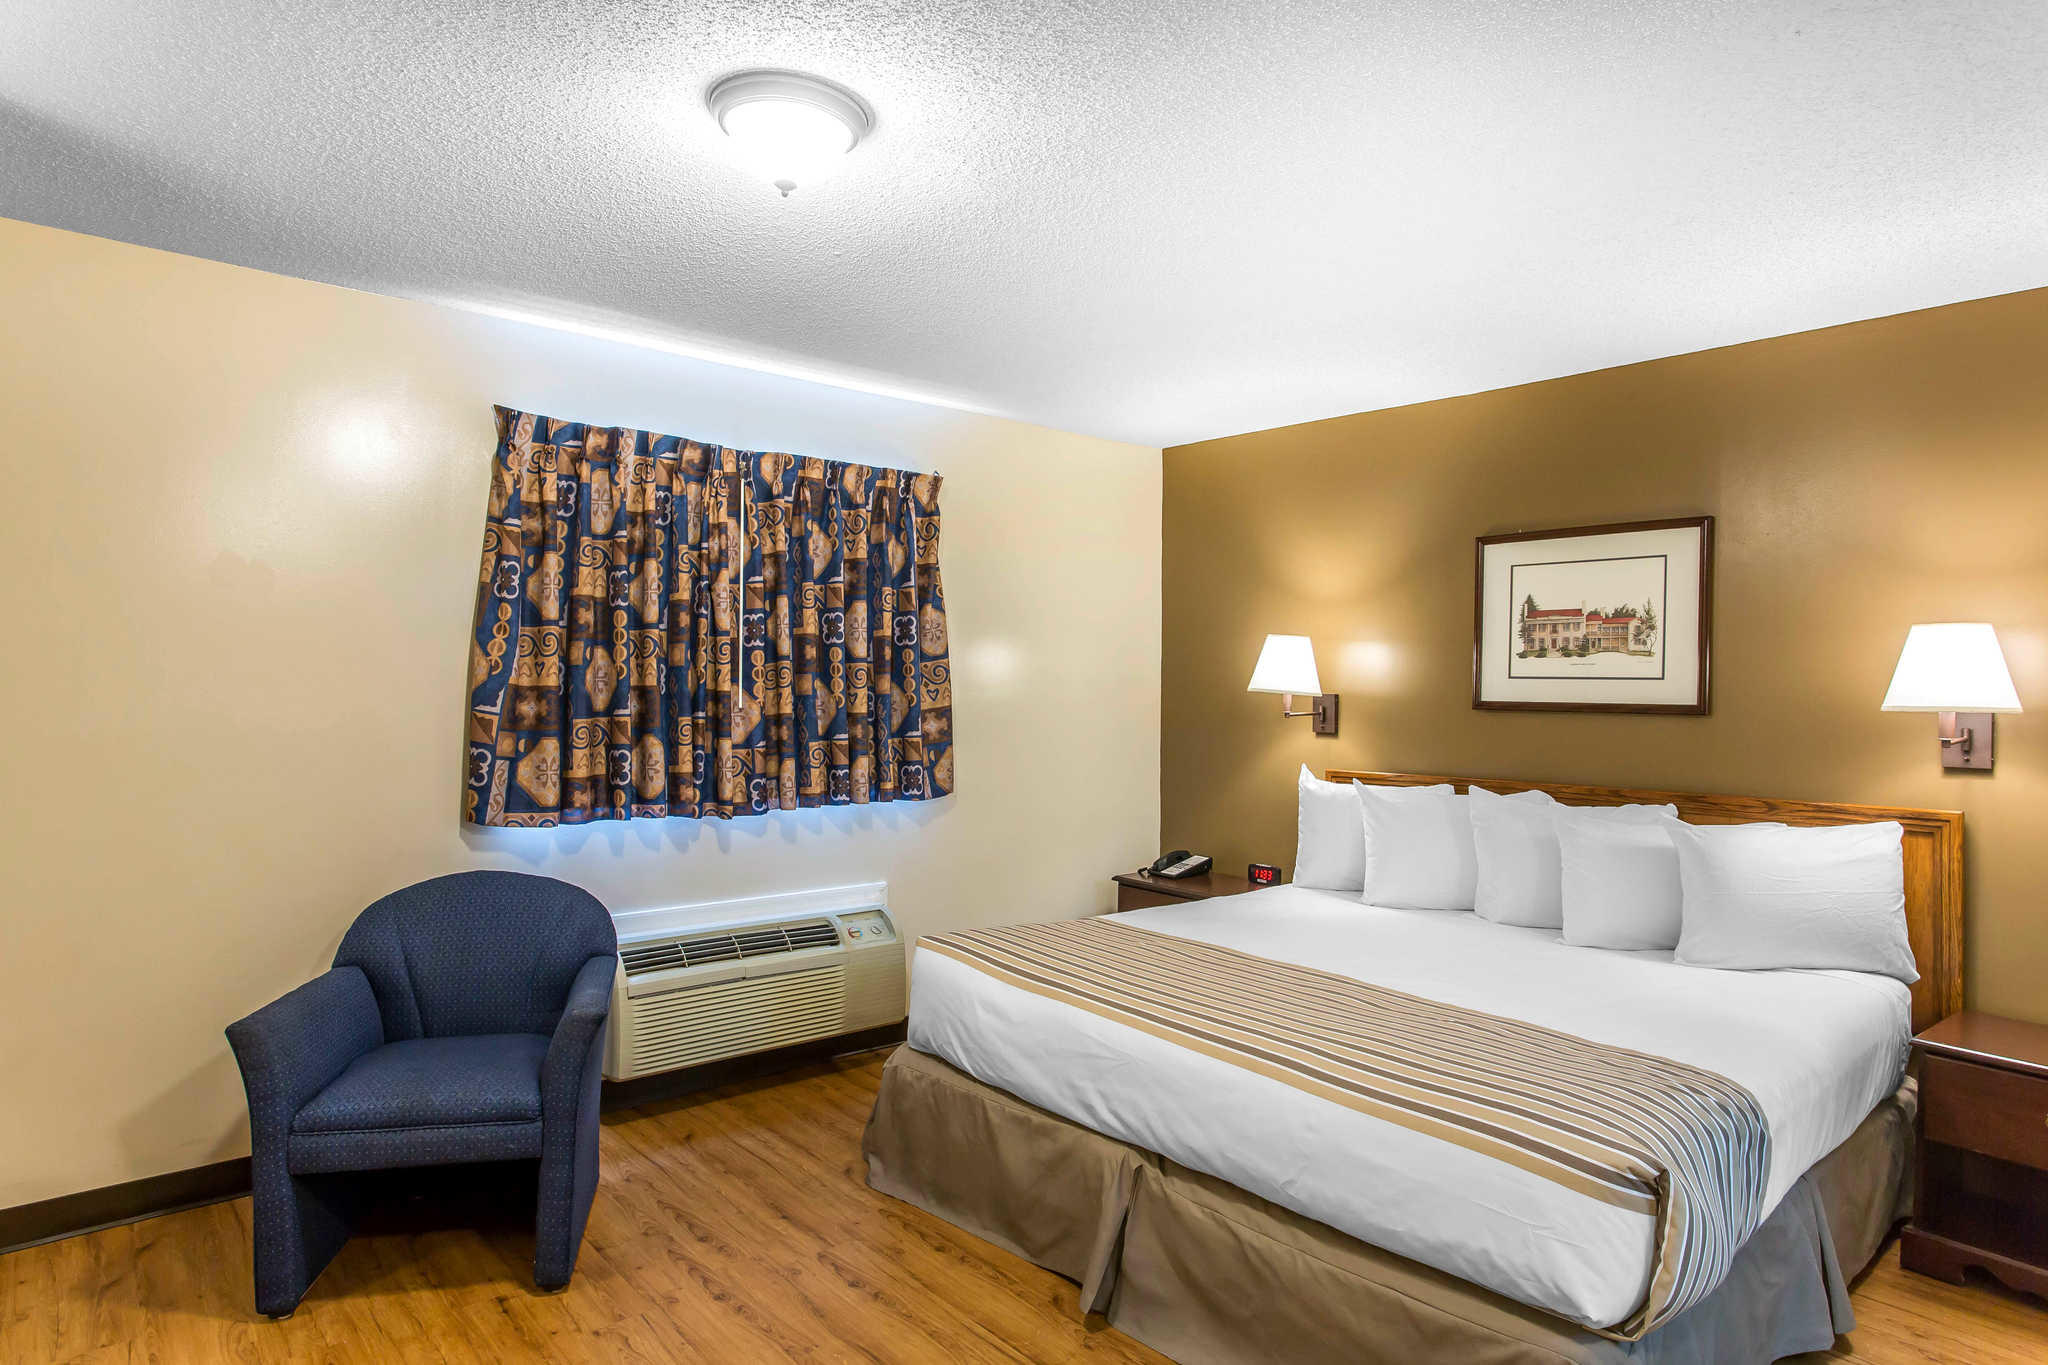 Hotel Rooms Weekly Rate Near Me